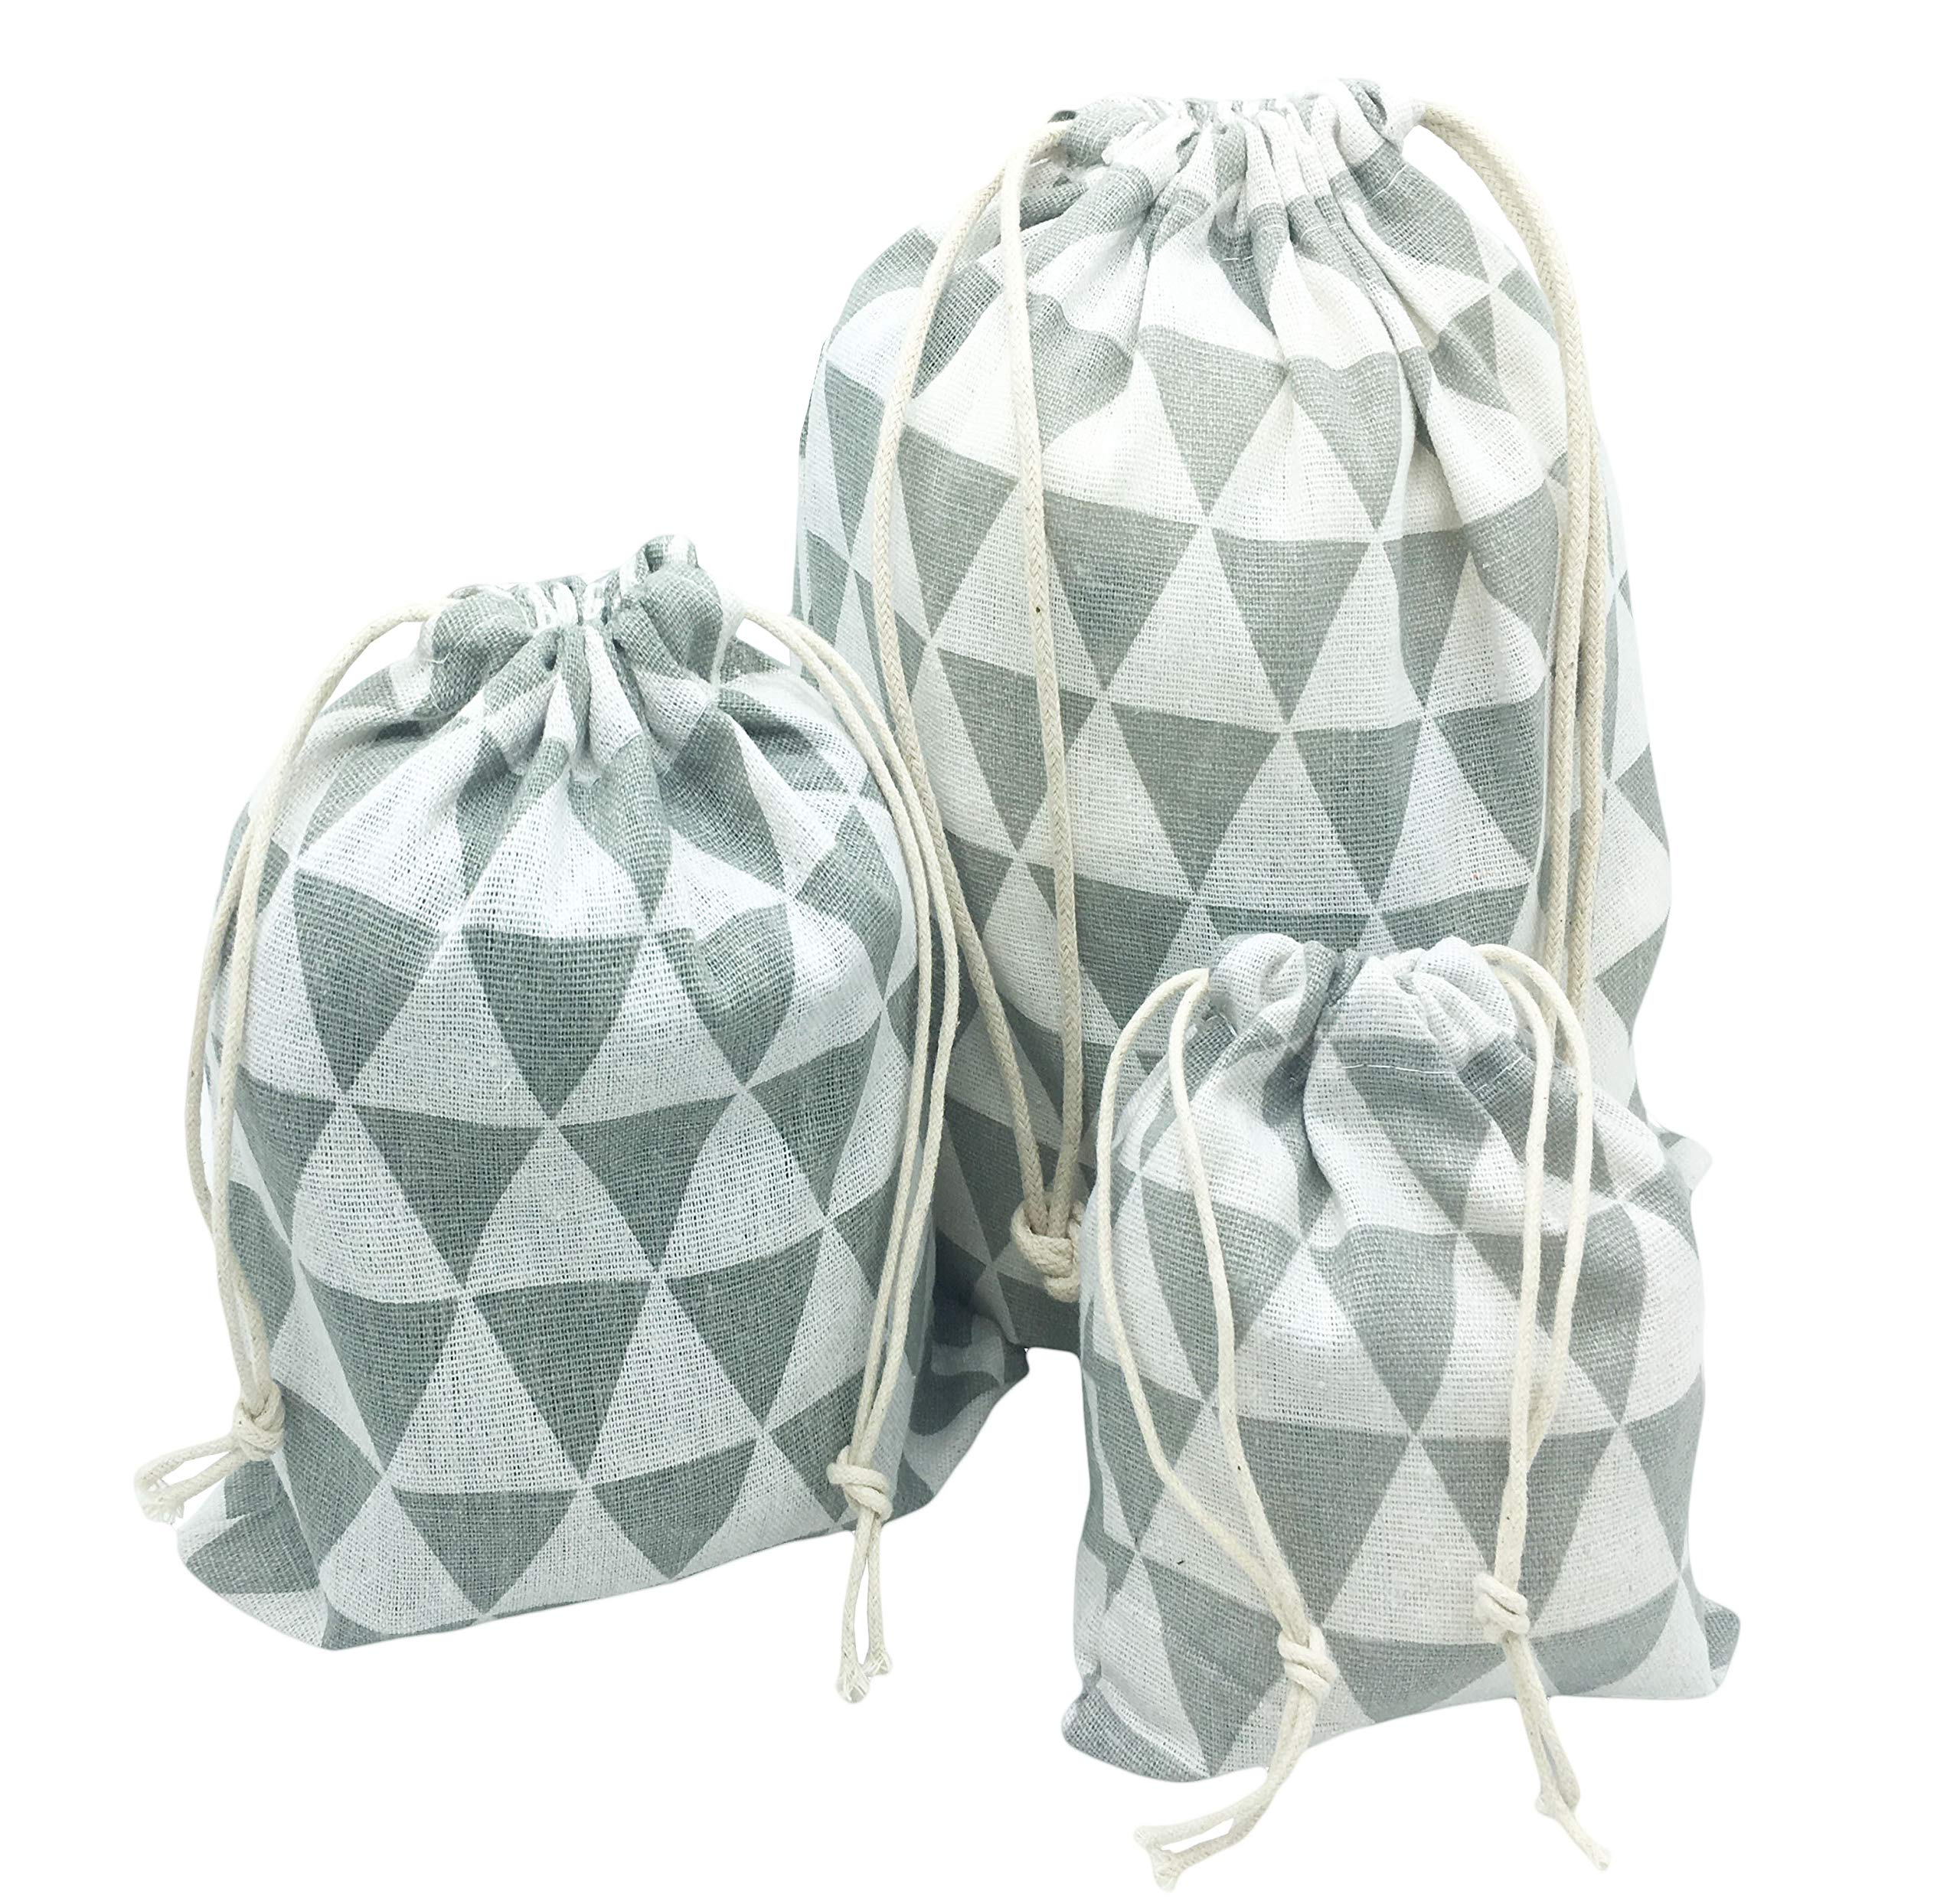 3PCS Cotton Linen Drawstring Storage Bags Pouch Sack Organizer With Pull String